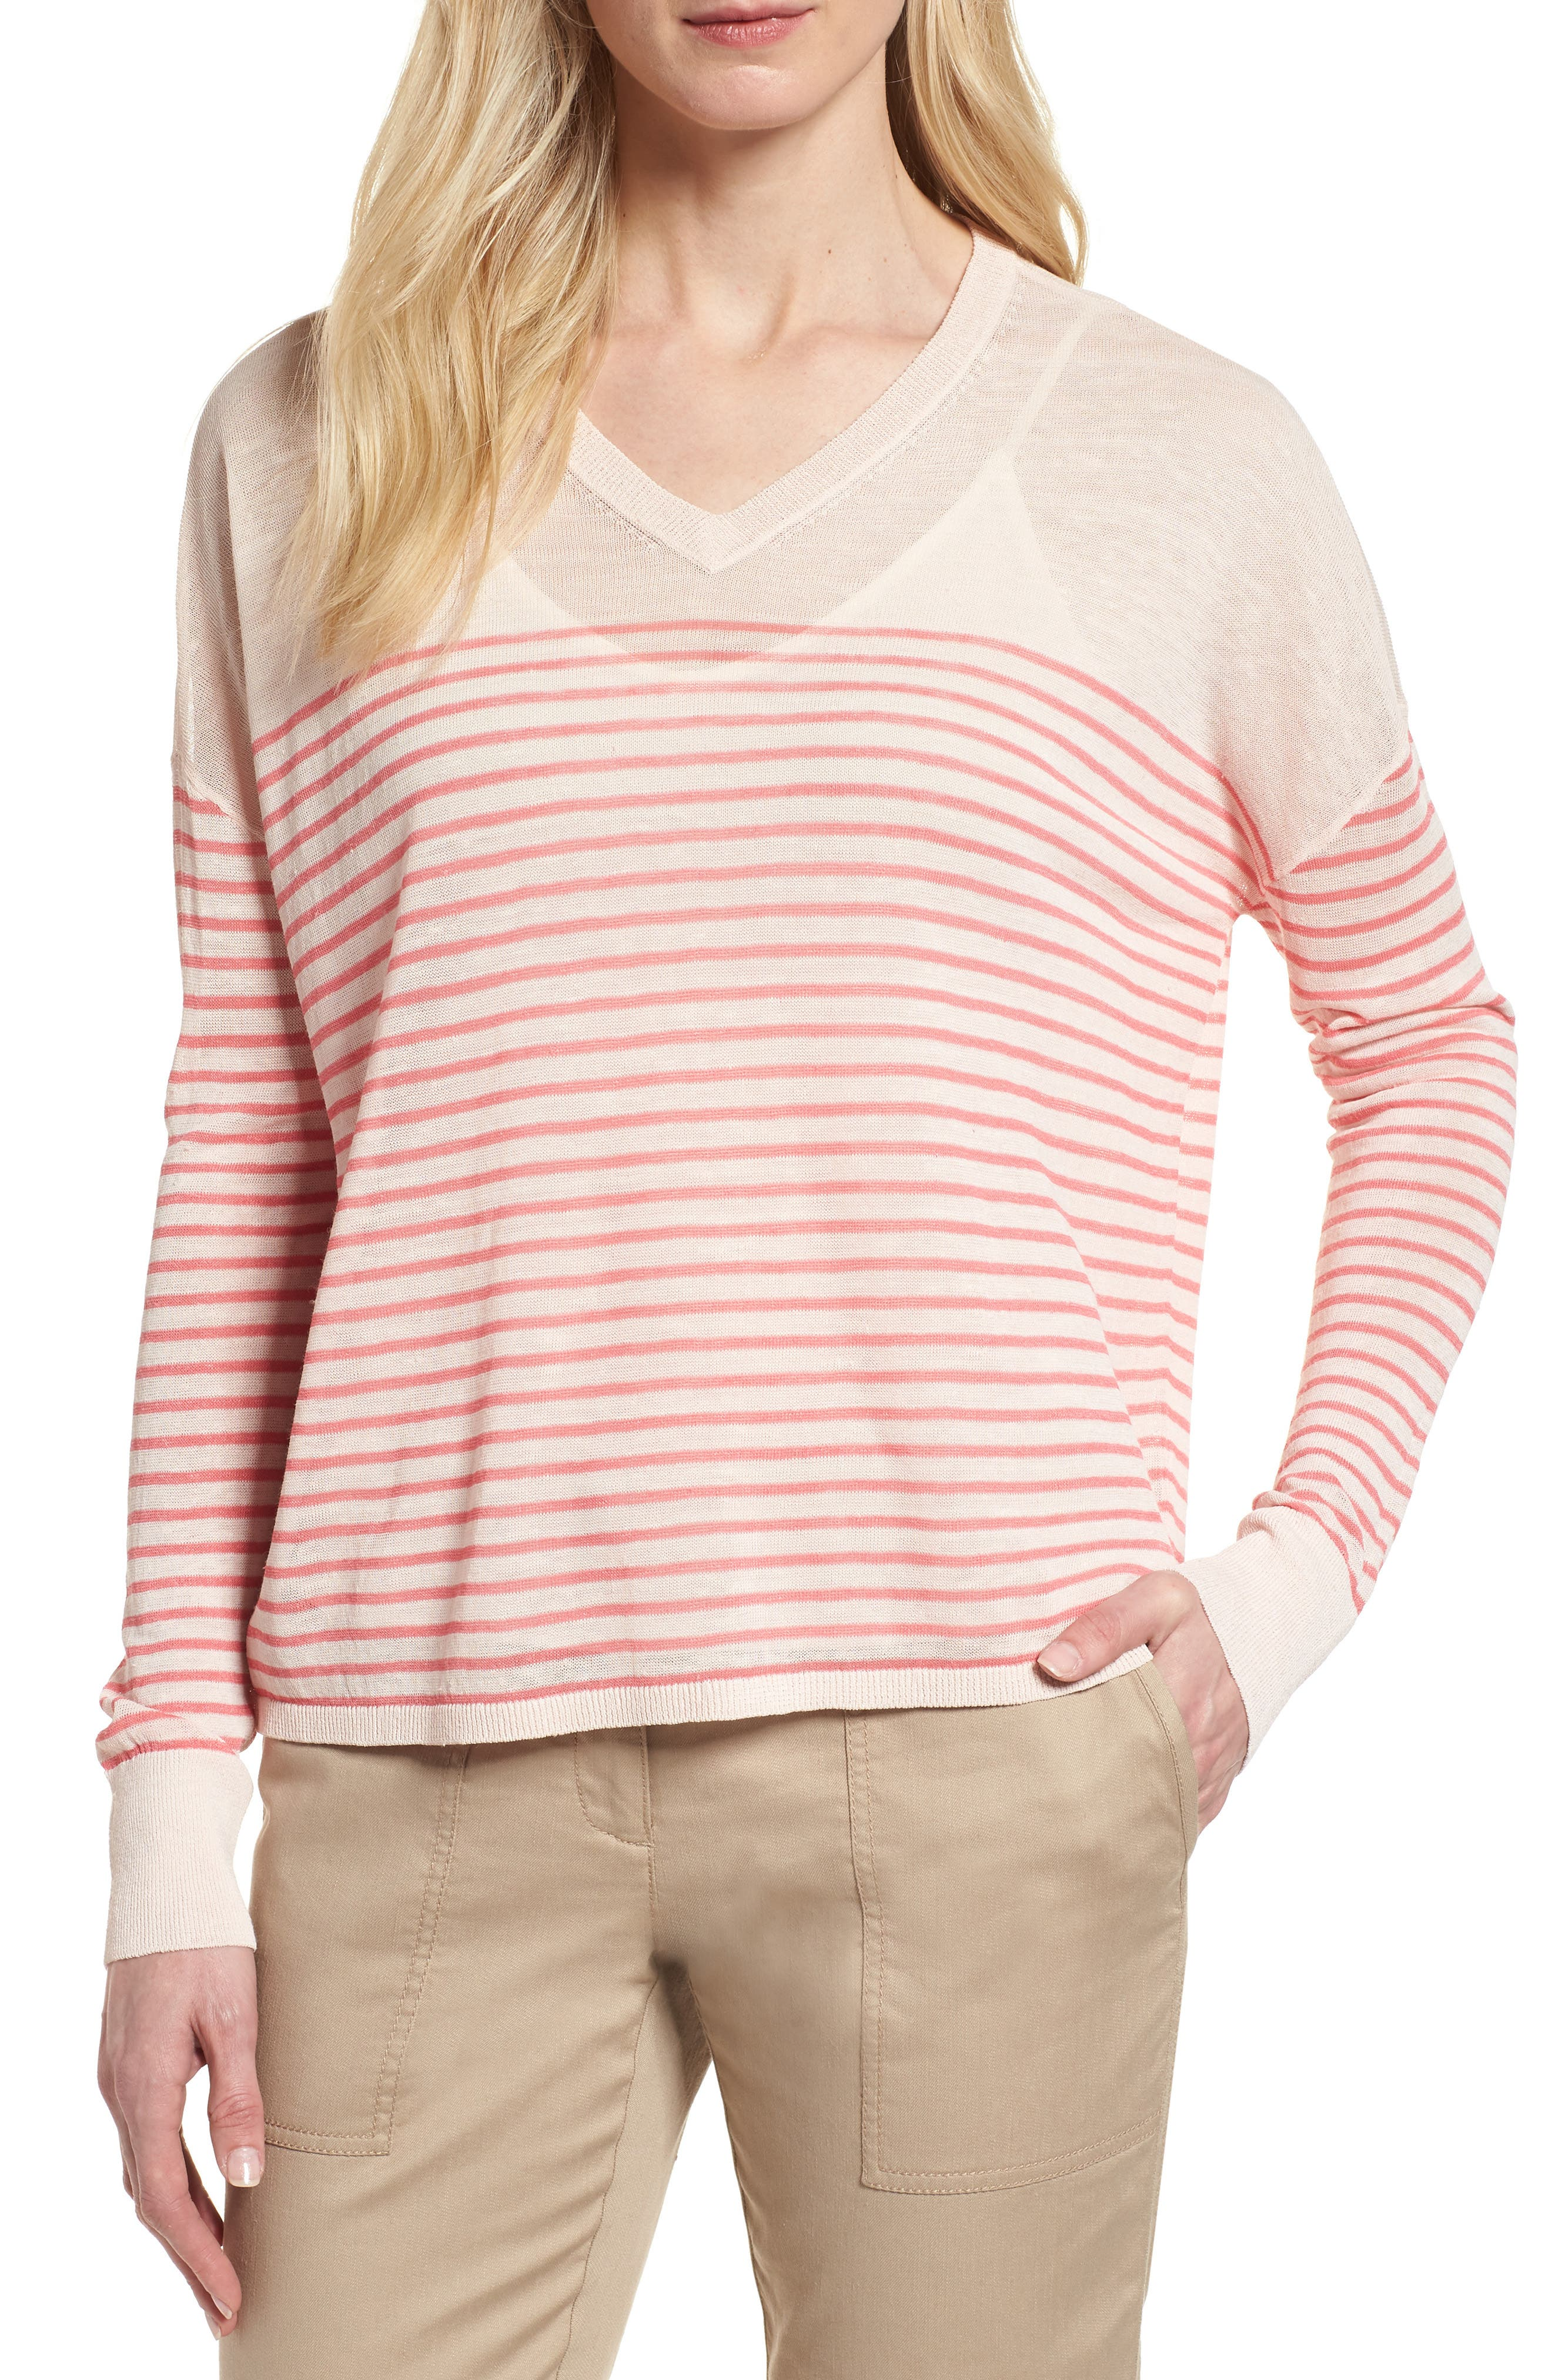 Nordstrom Signature Stripe Linen Blend Sweater